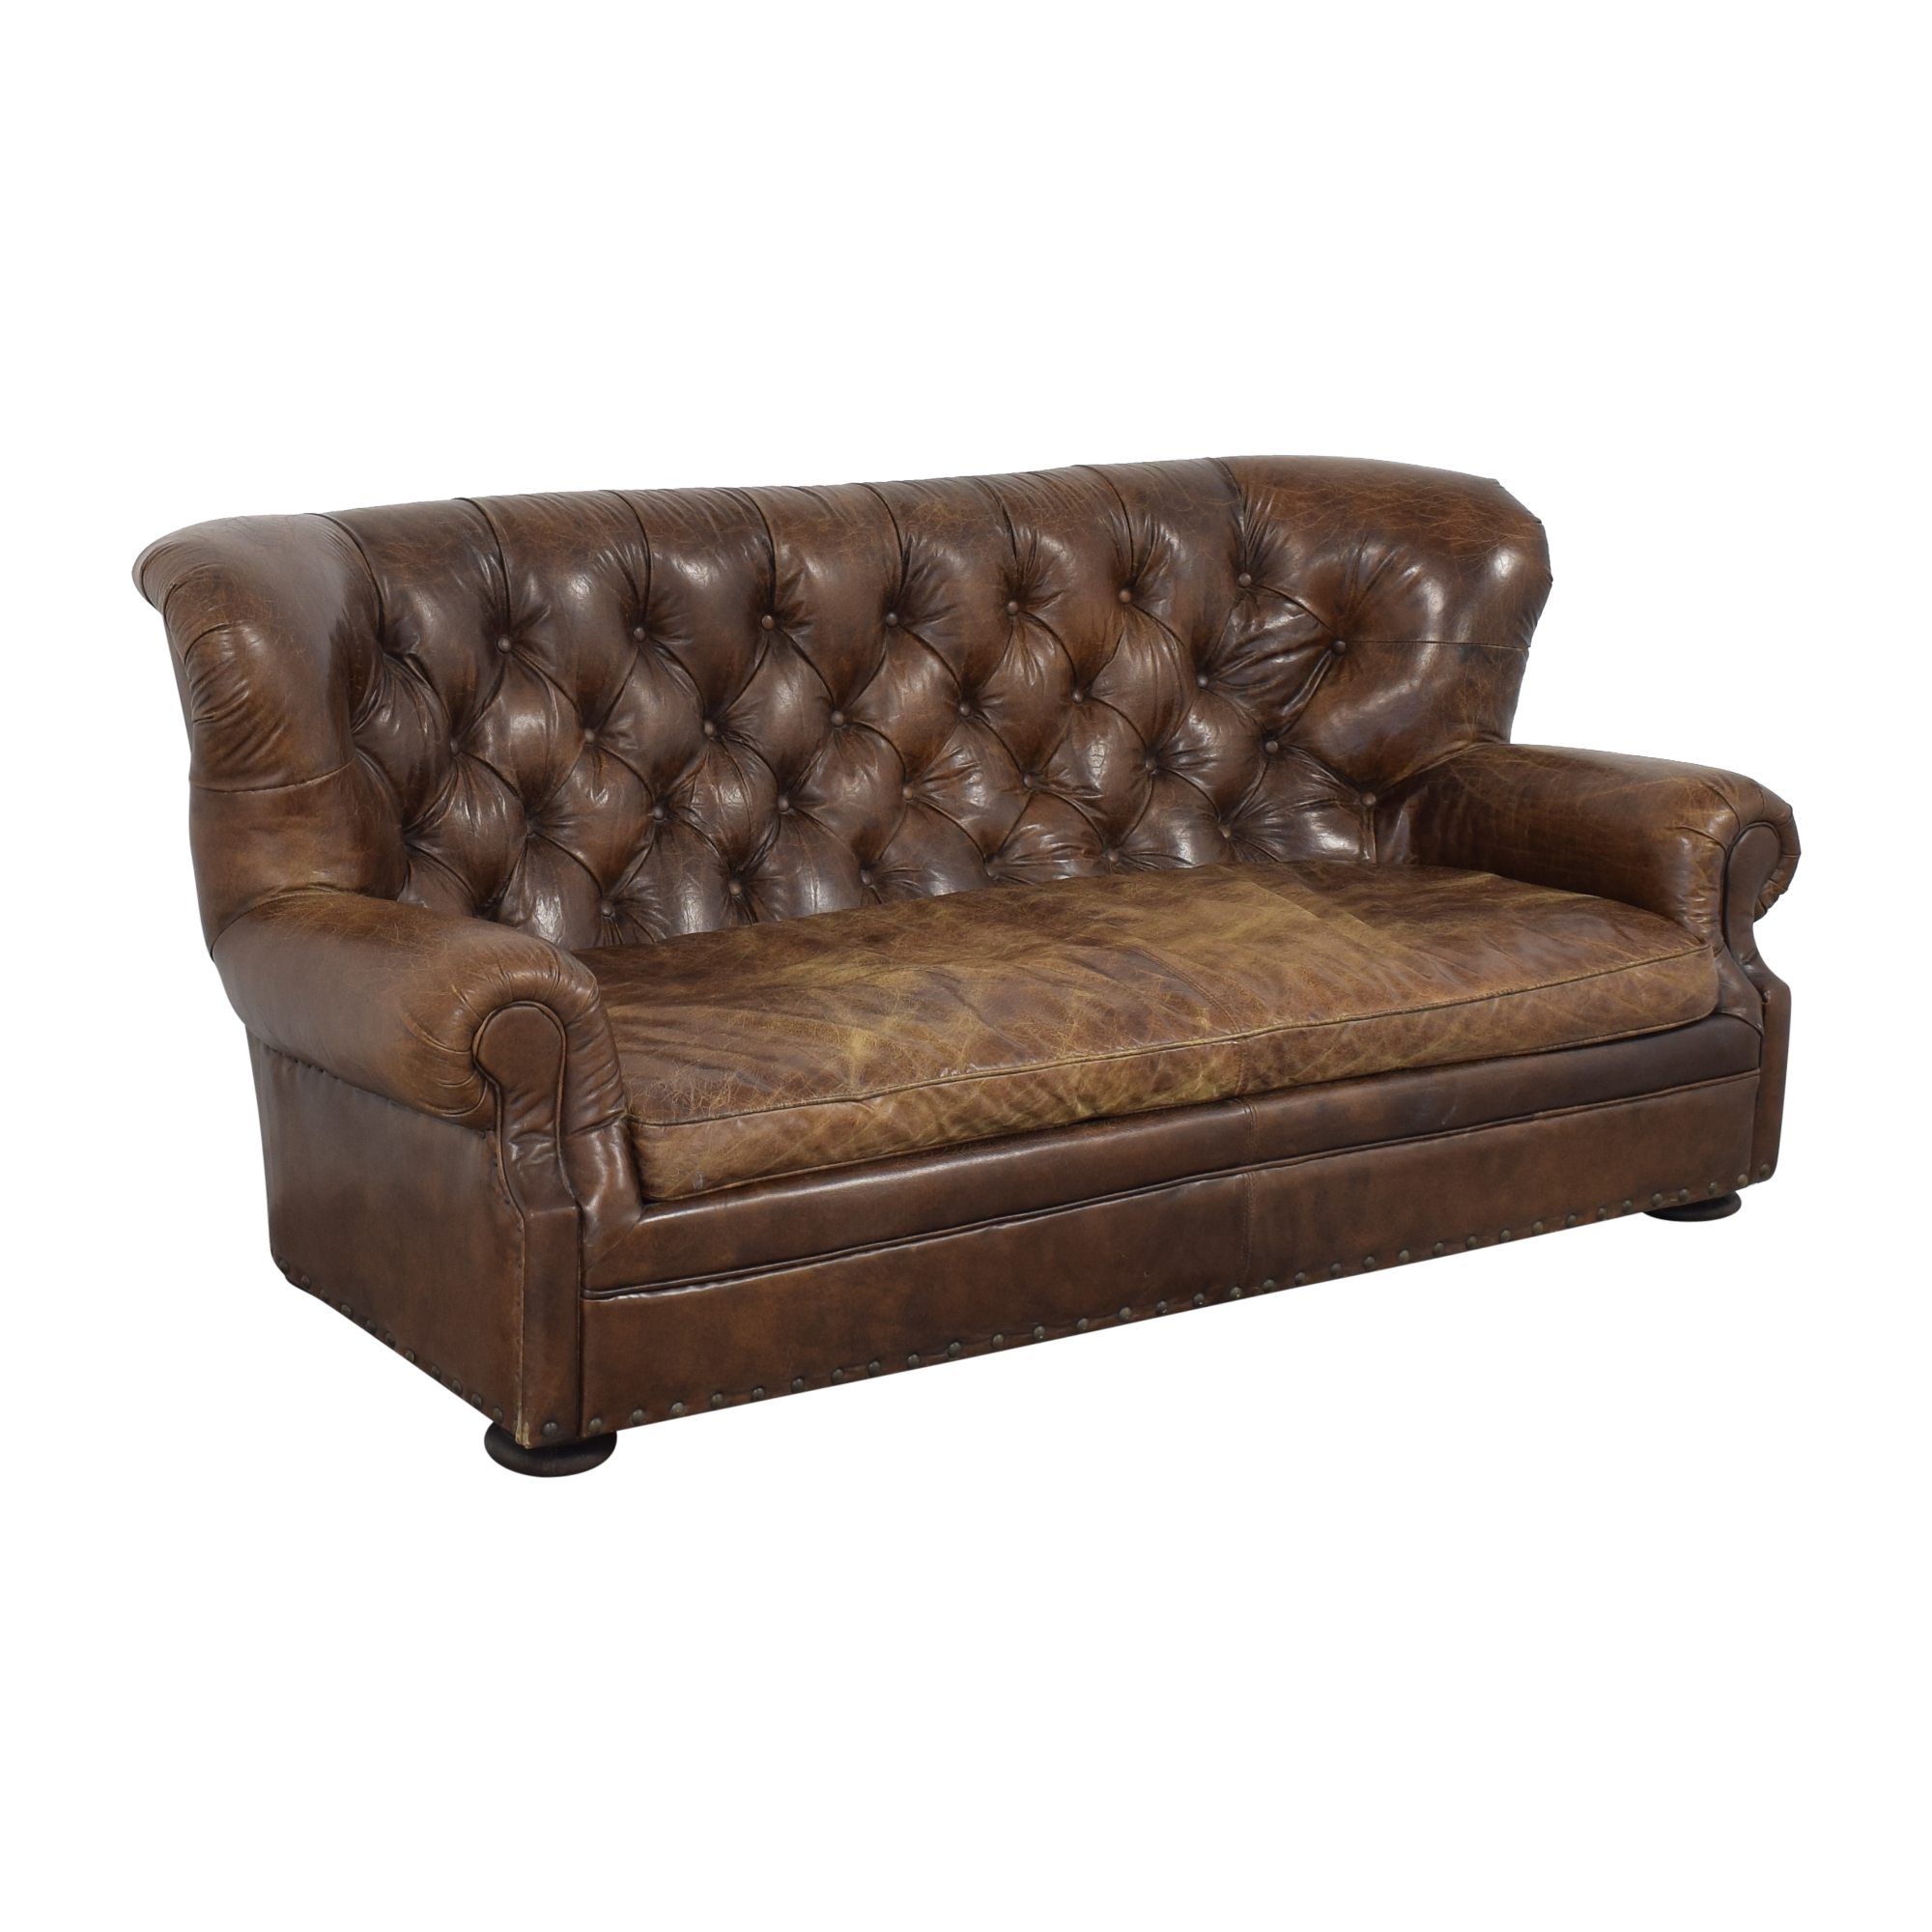 buy Restoration Hardware Restoration Hardware Churchill Leather Sofa online